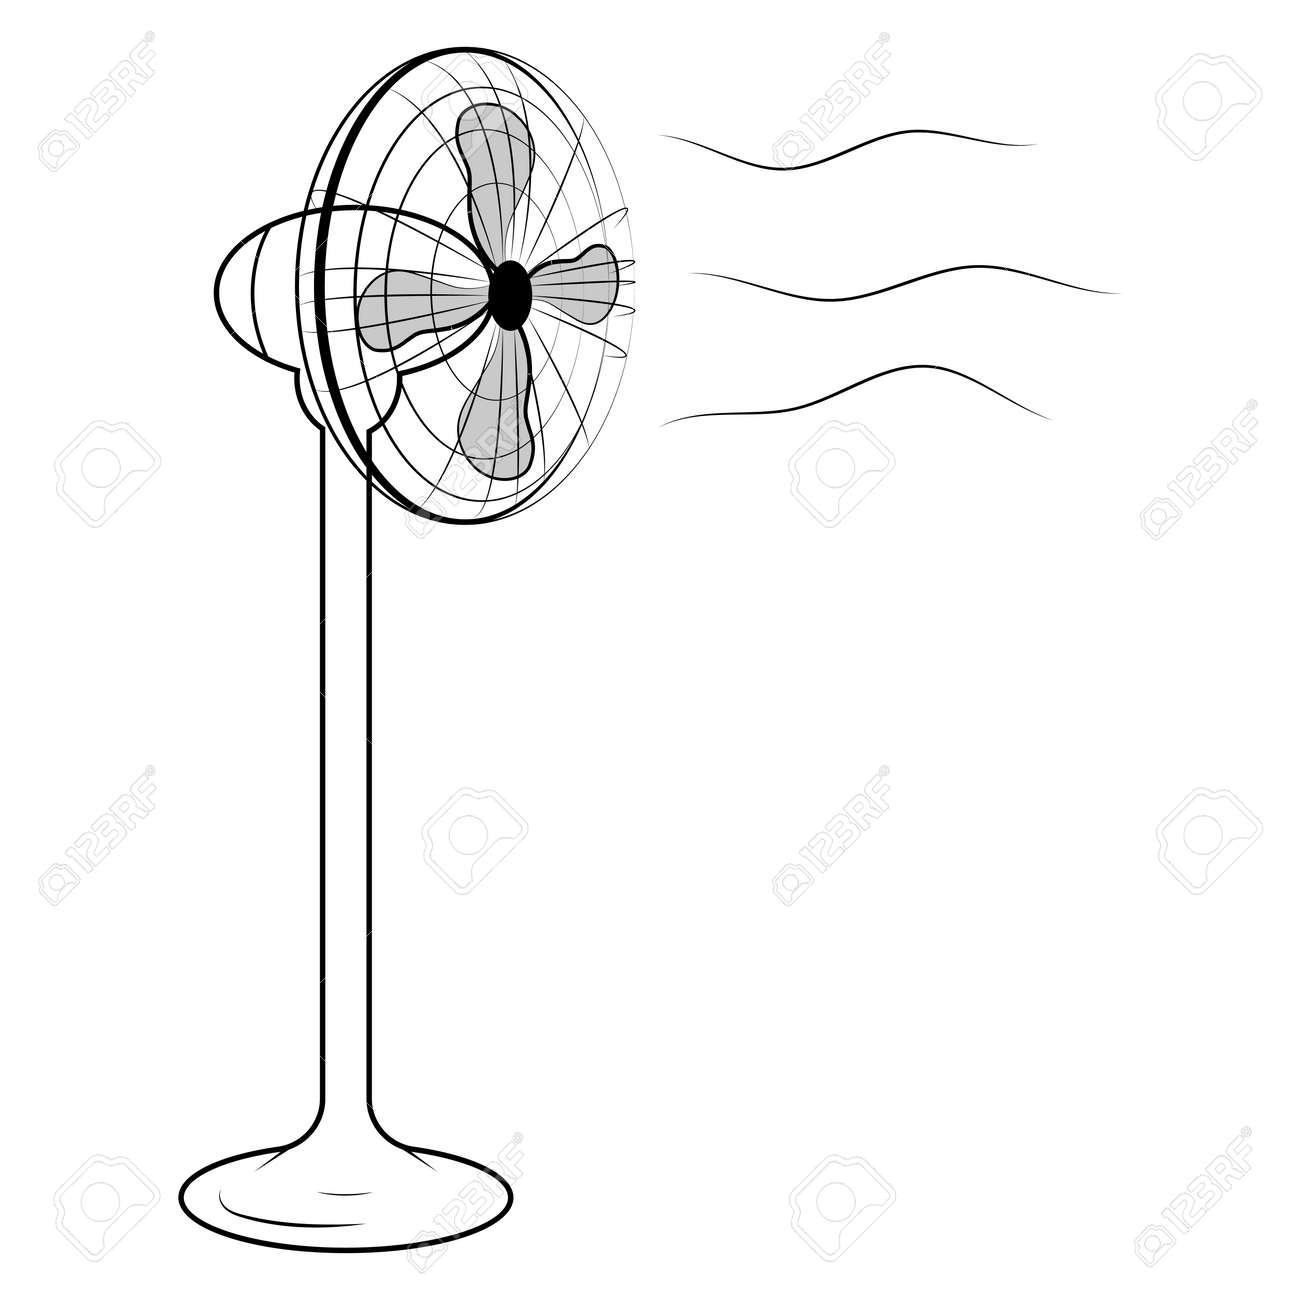 fan clipart black and white. vector illustration of black air fan on white background stock - 38615338 clipart and d